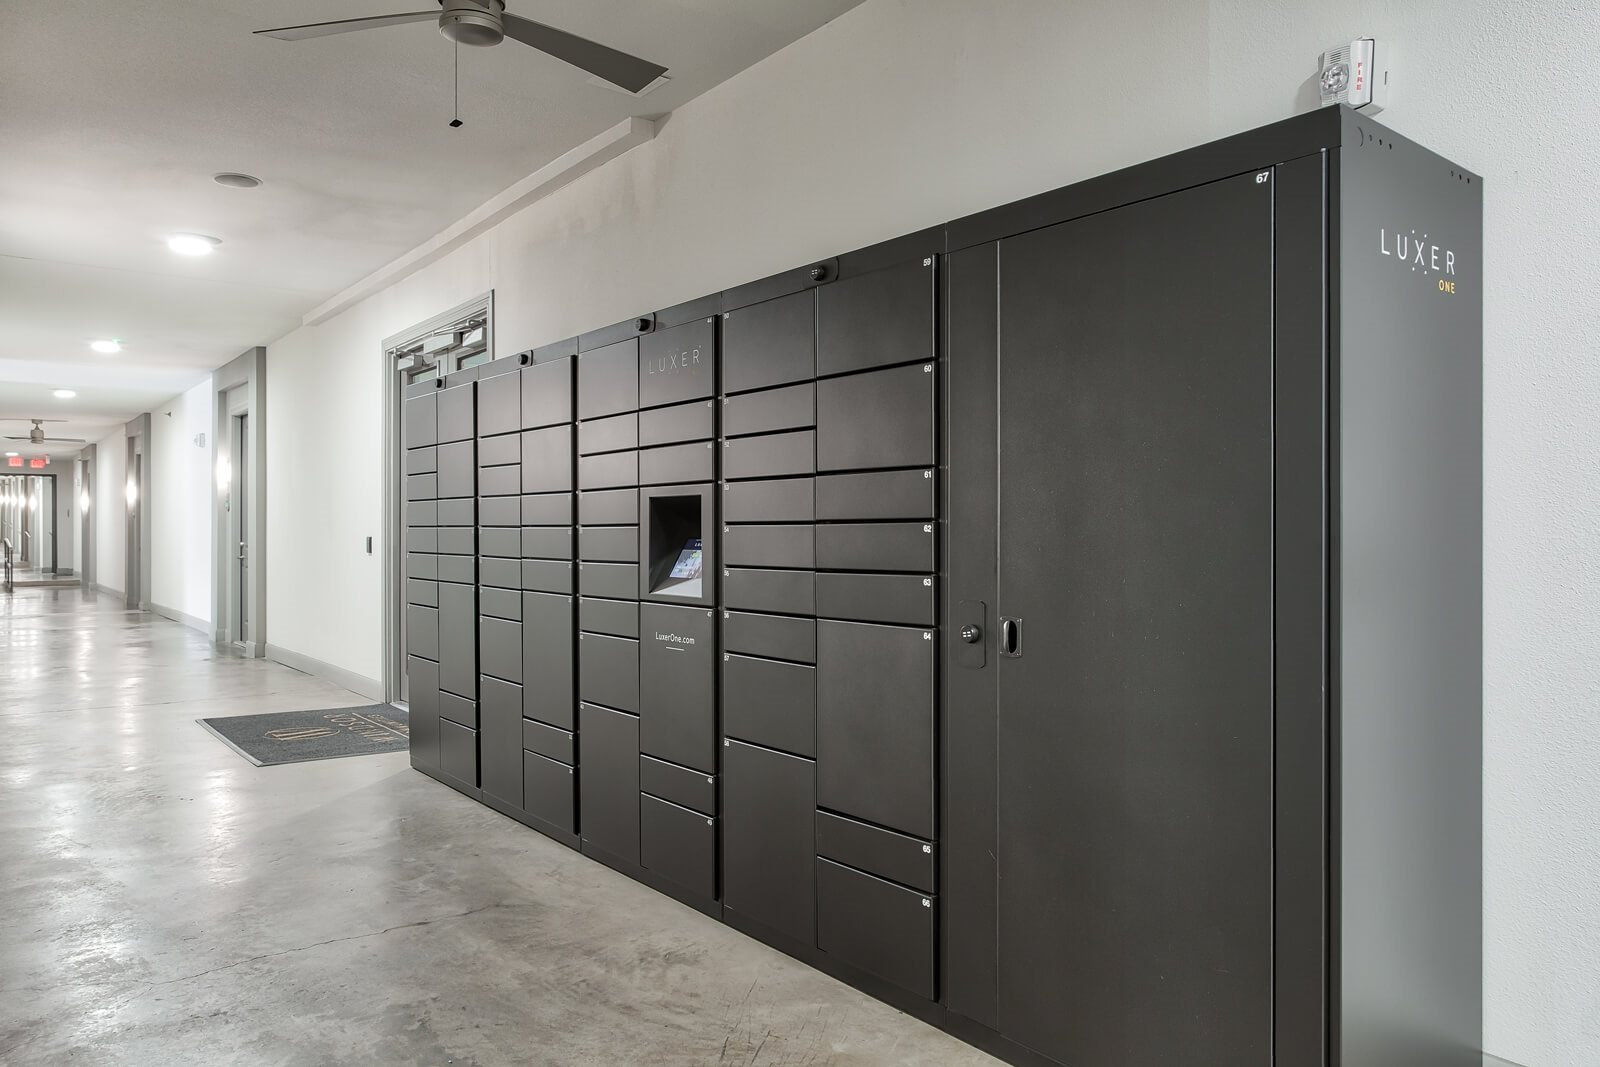 24/7 Package Lockers at Windsor West Lemmon, 3650 Cedarplaza Lane, Dallas